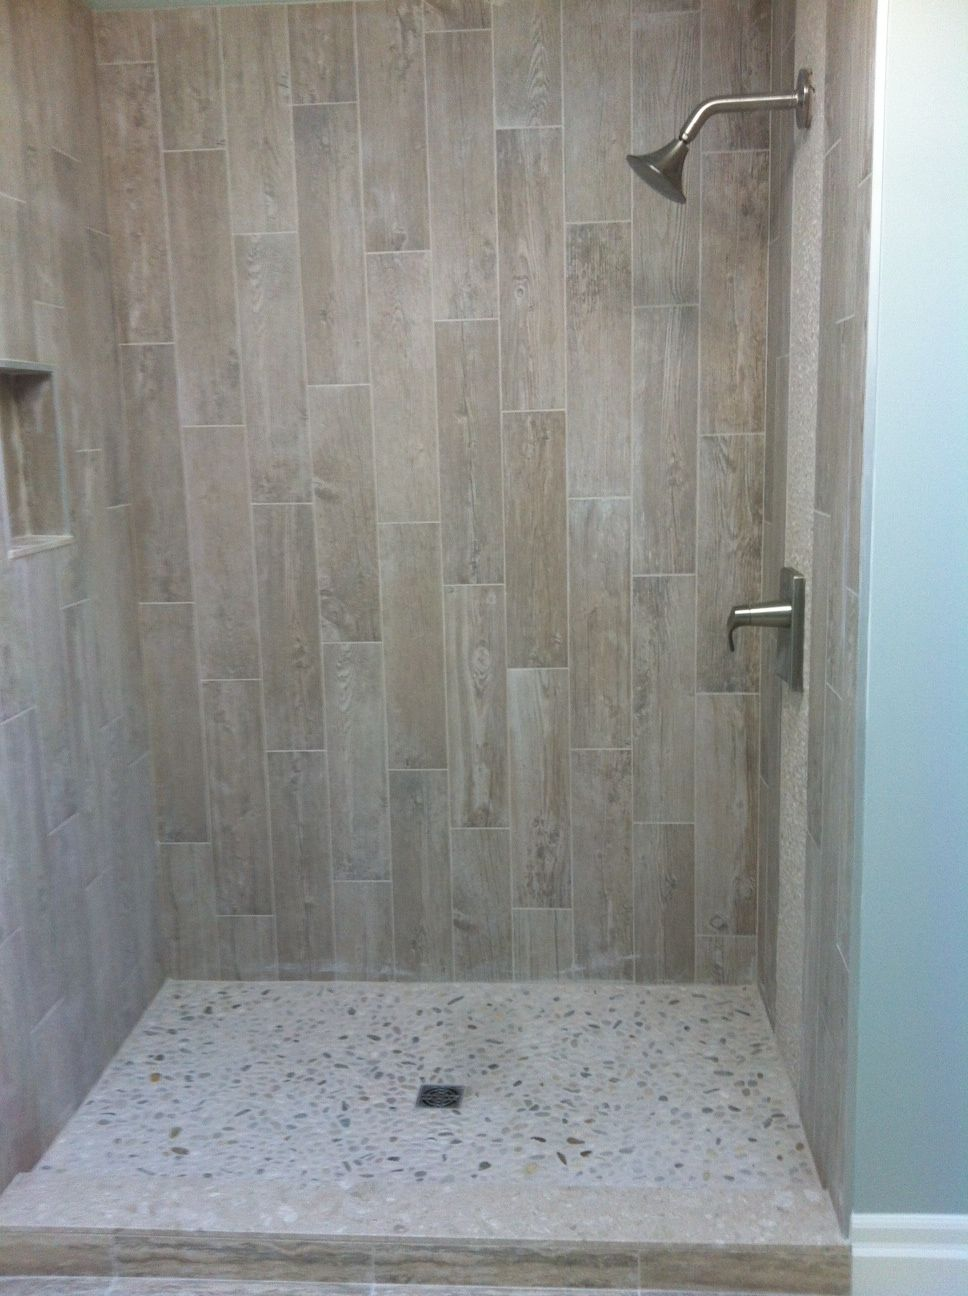 Wood Grain Tile With River Rock Showers Pinterest Wood Grain Tile Wood Grain And Rivers